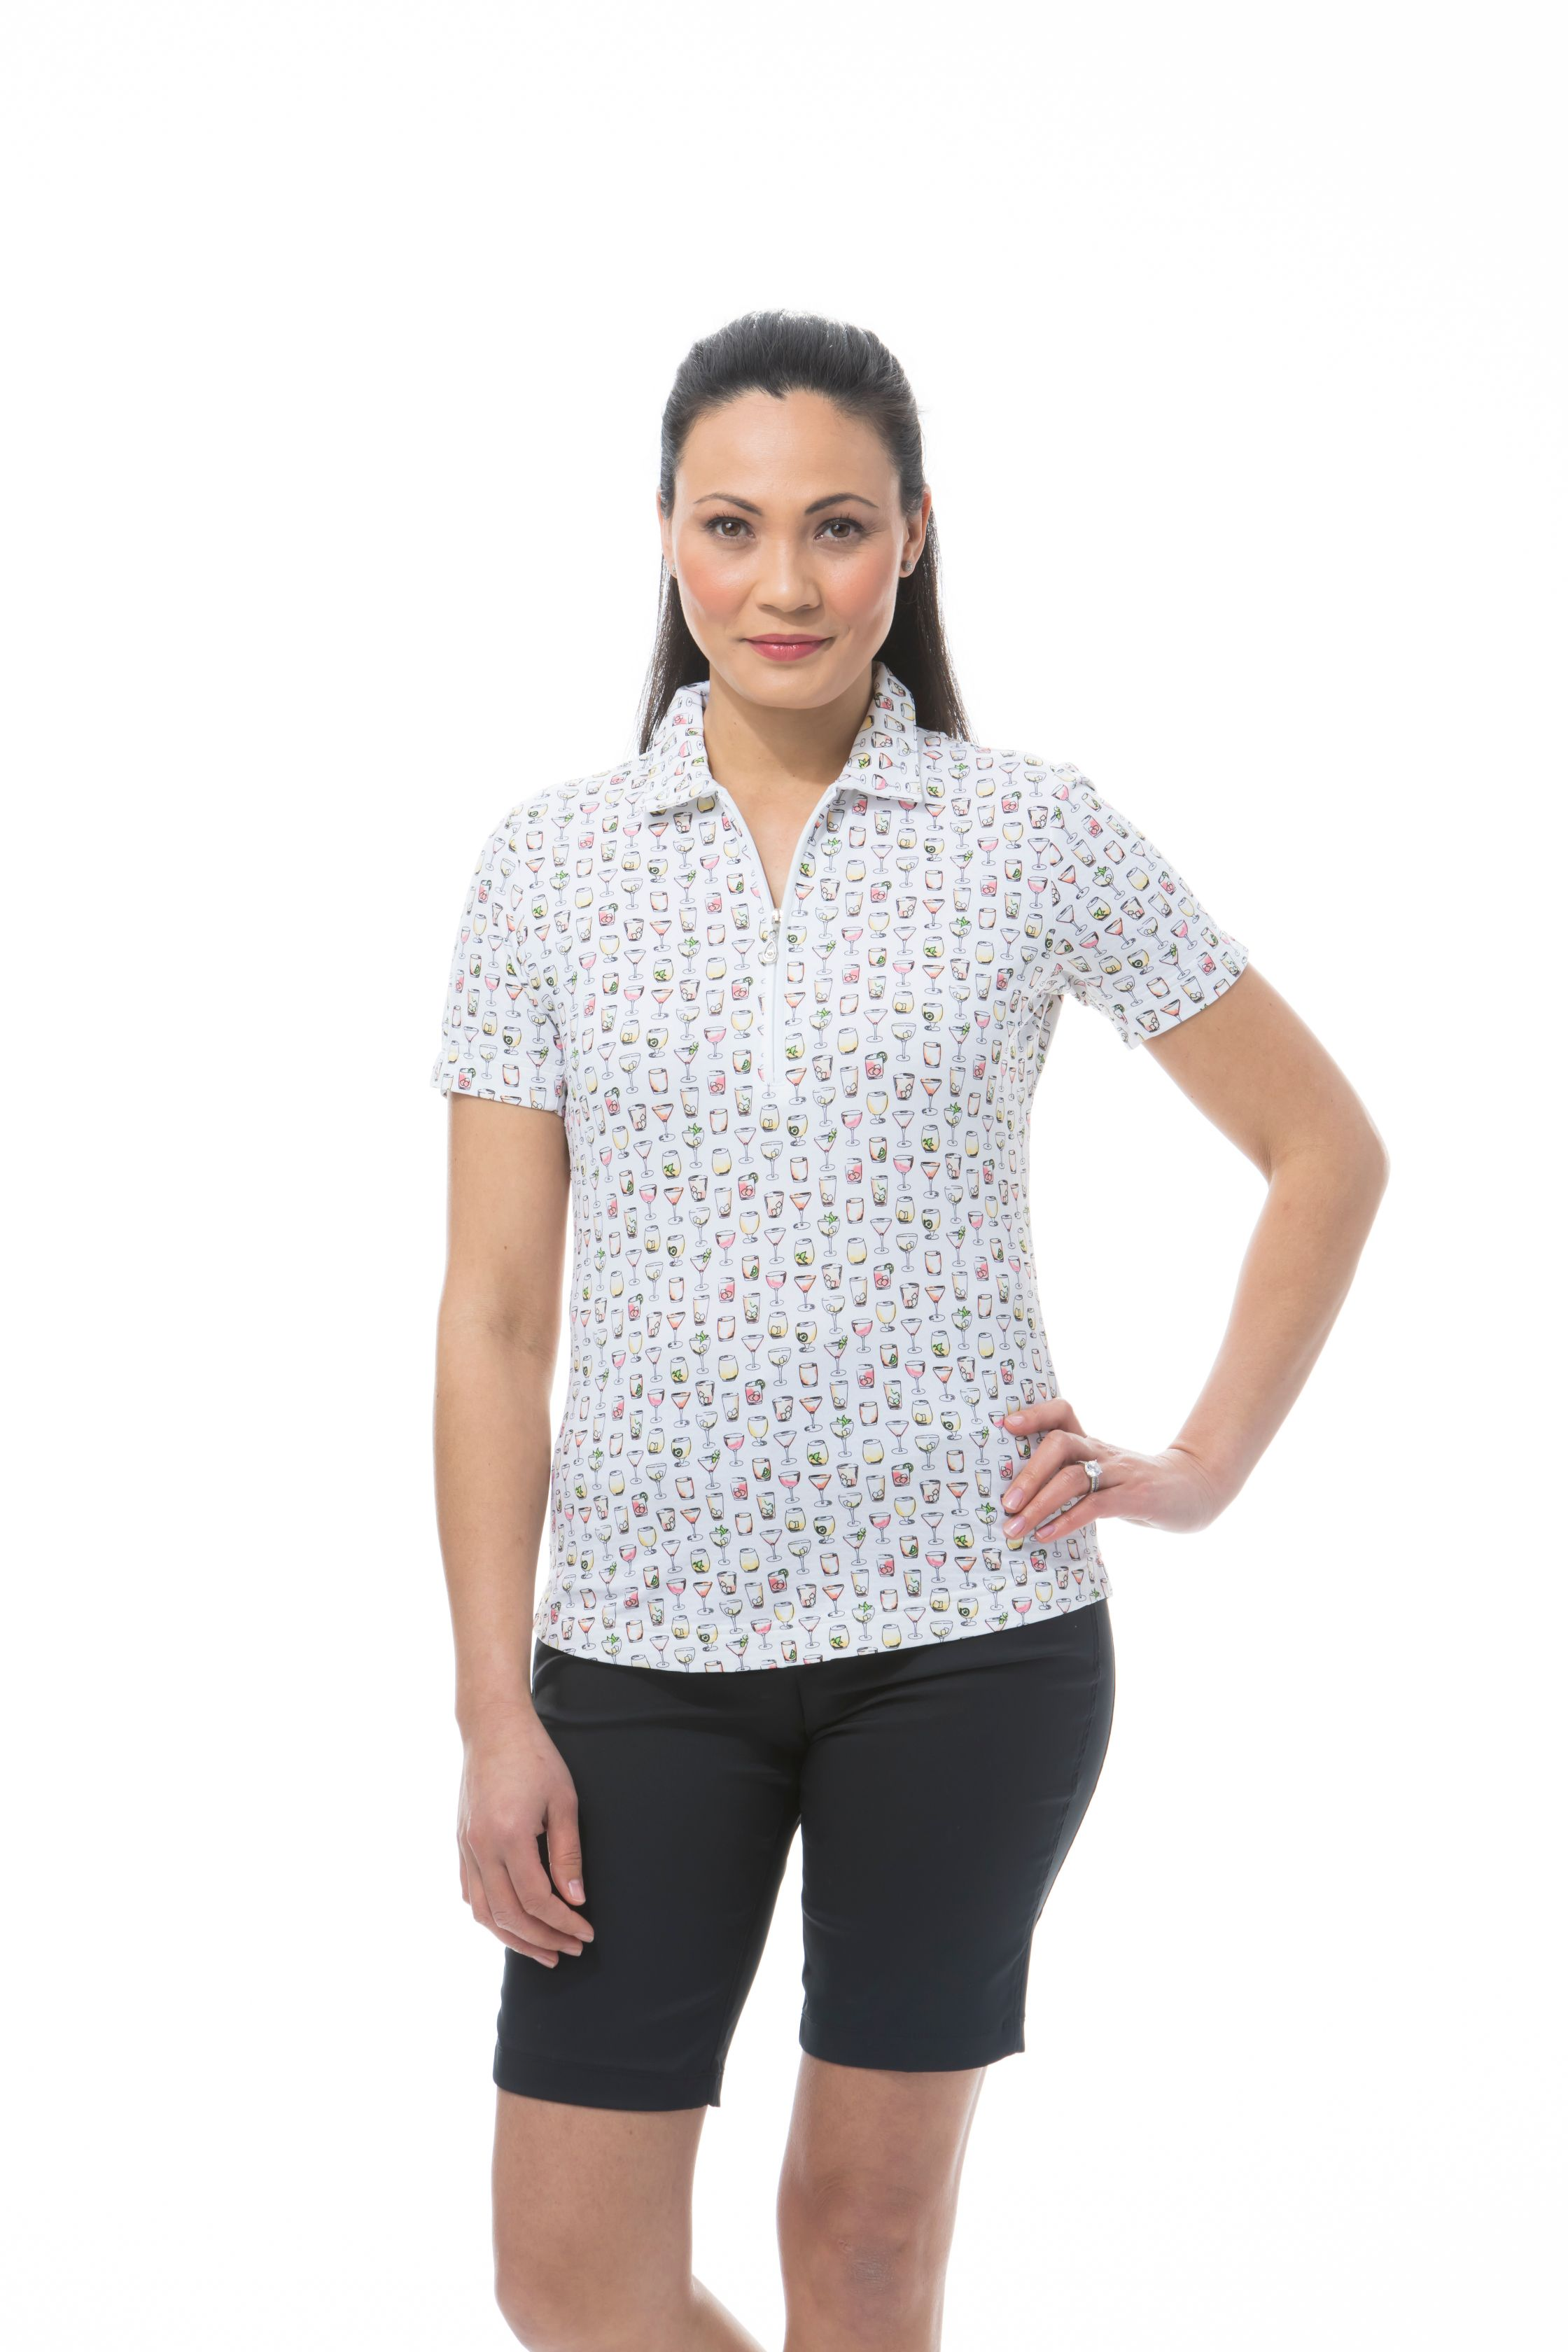 SANSOLEIL SOLTEK ICE FITTED SHORT SLEEVE POLO. ON THE ROCKS. 900615